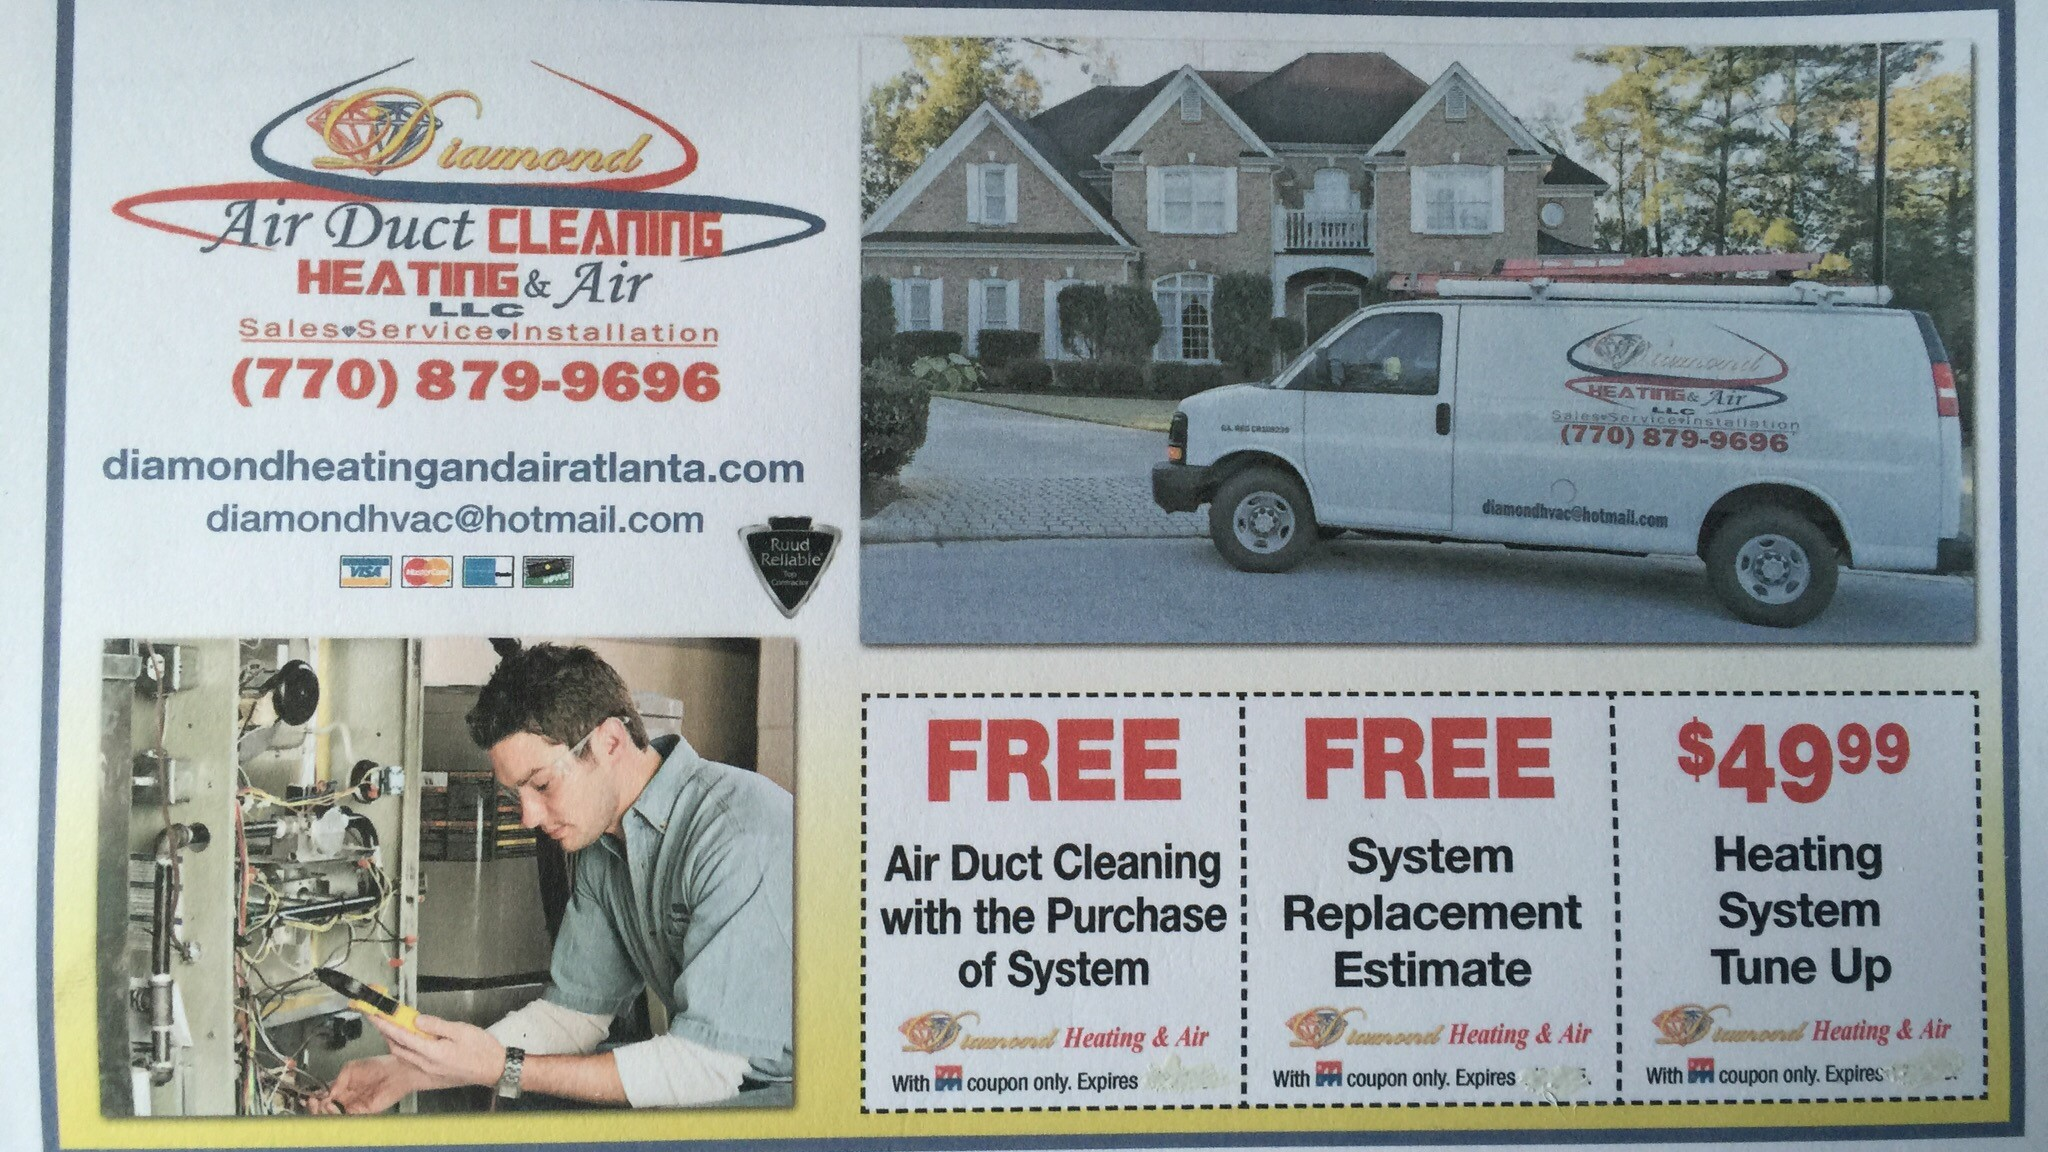 Diamond Heating & Air Conditioning